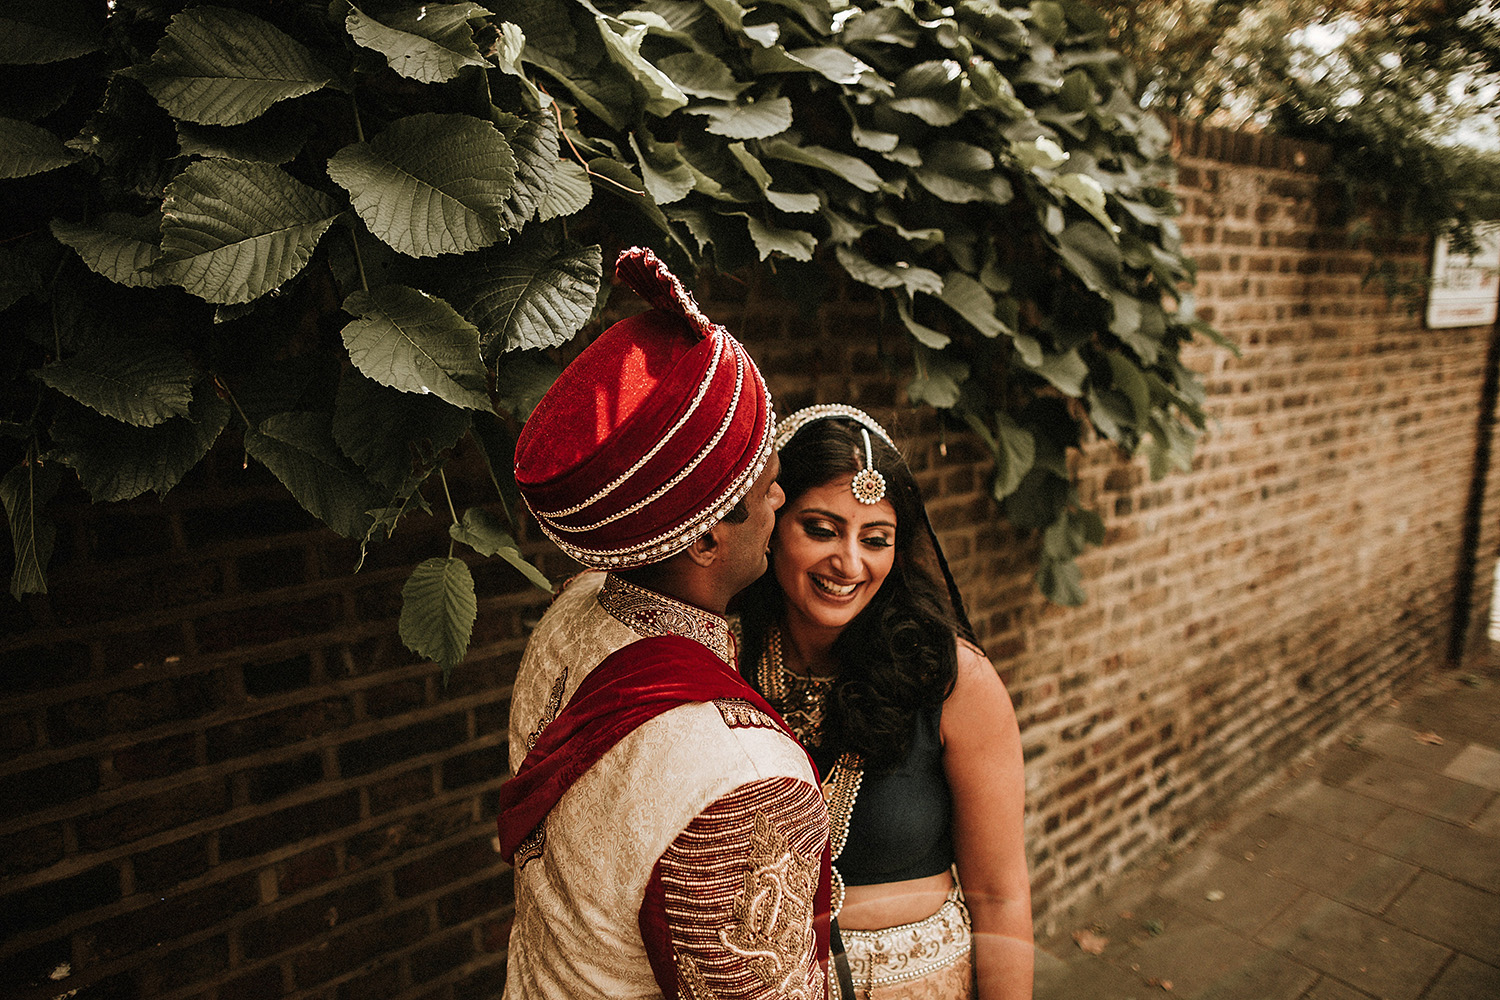 Copy of Copy of Copy of Copy of Copy of Copy of Copy of Copy of Copy of Copy of Copy of Copy of Copy of Copy of Copy of indian couple share a laugh during hindu wedding